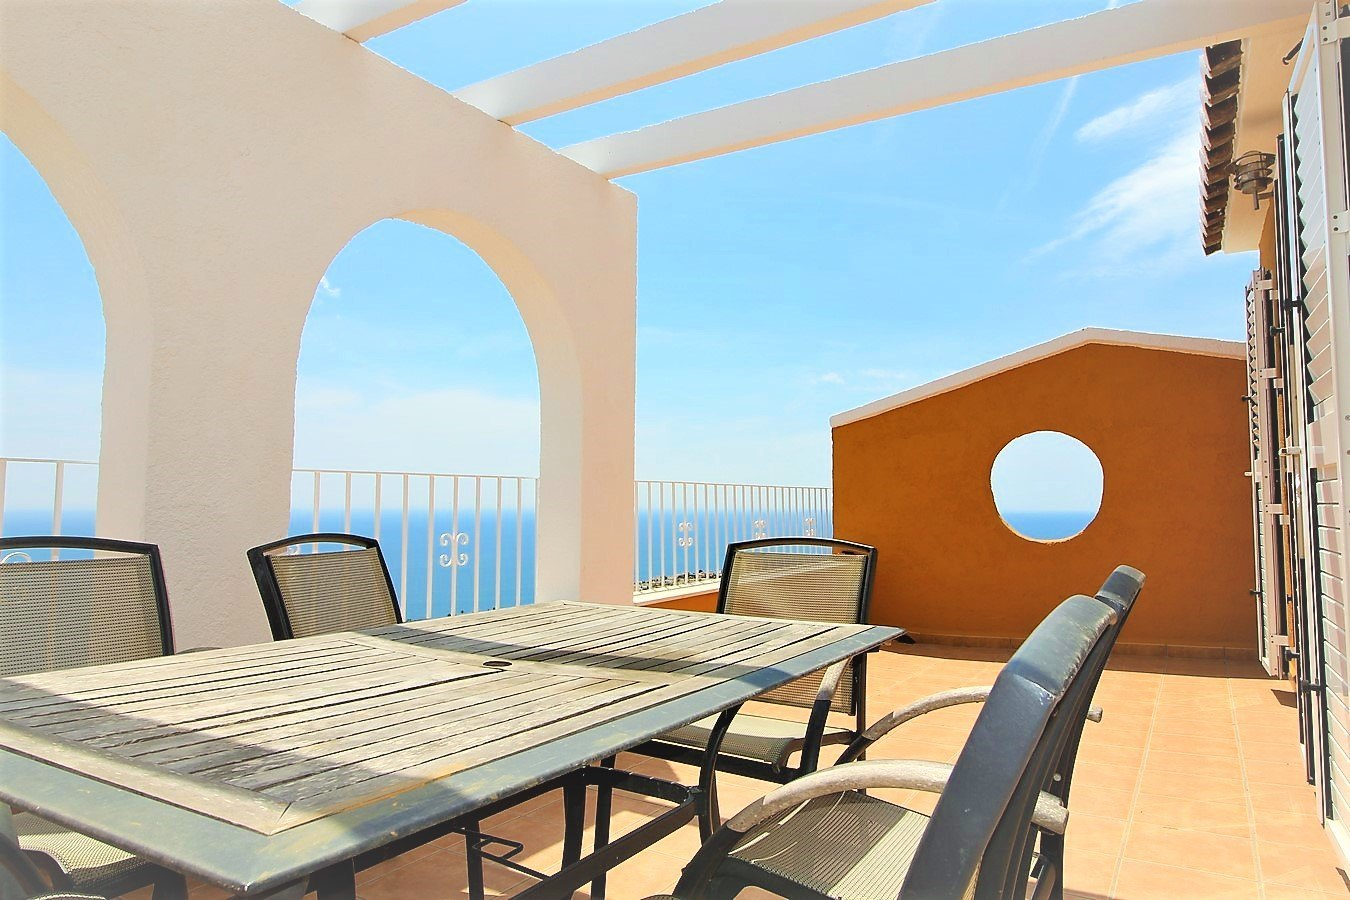 Duplex apartment for sale in Cumbre del Sol. The apartment is located in a lovely area between Jav,Spain